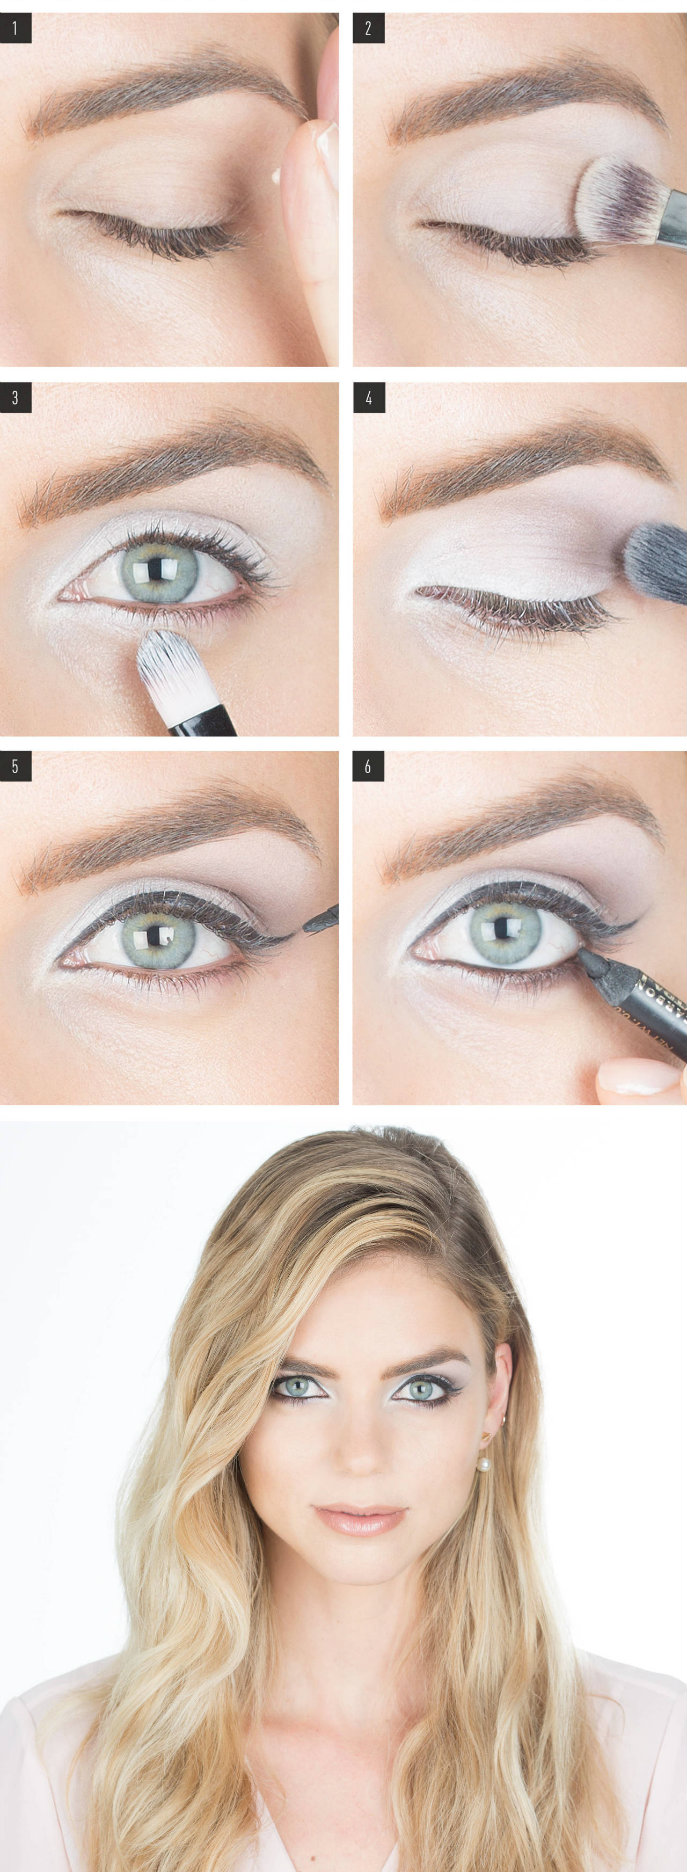 Makeup How-to